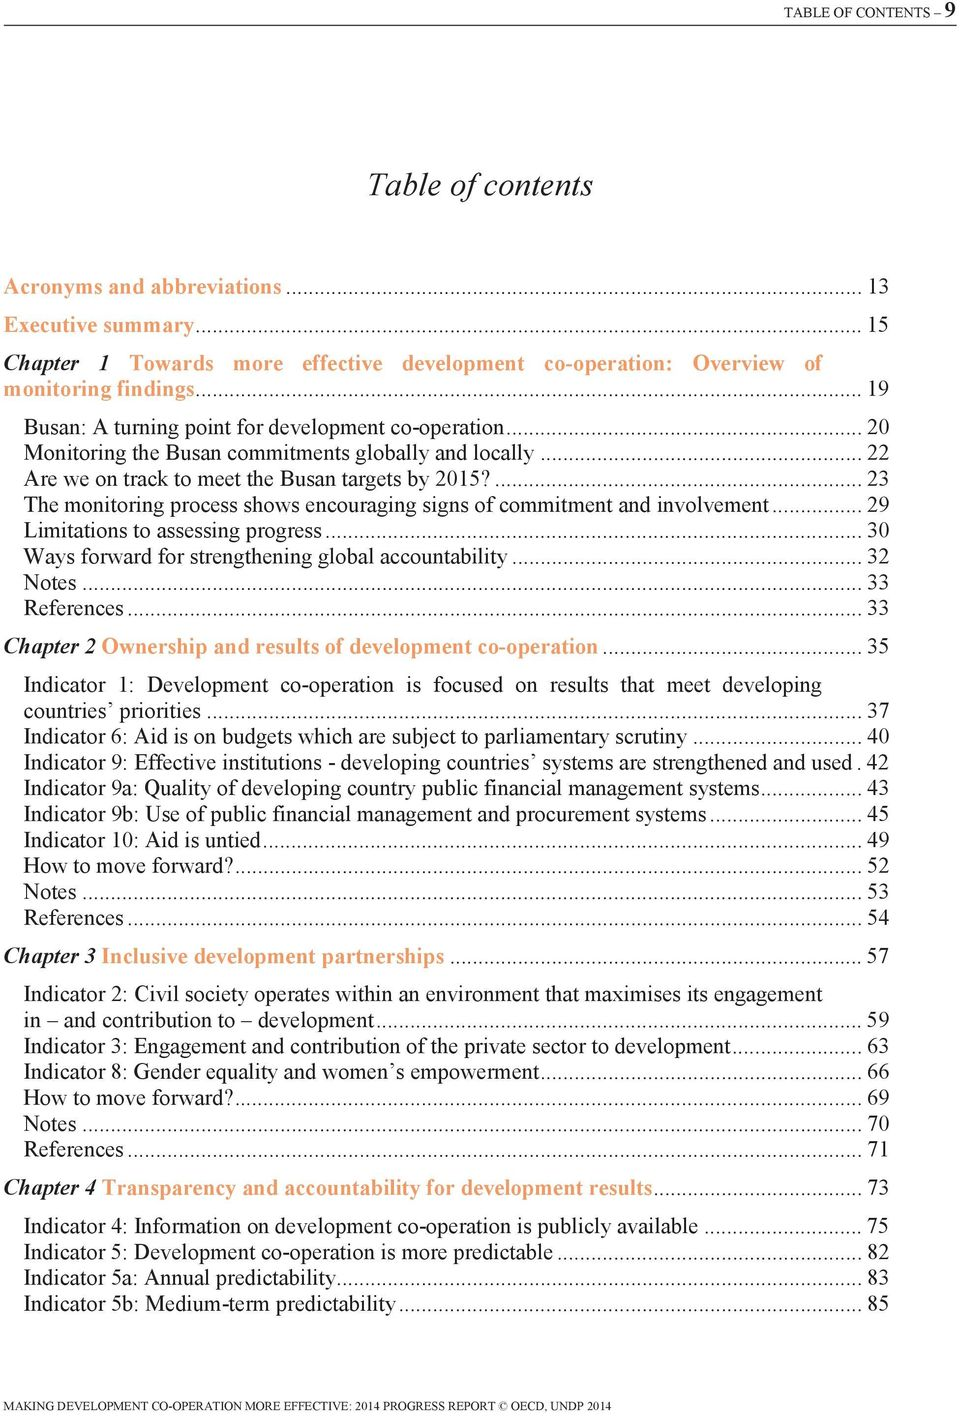 ... 23 The monitoring process shows encouraging signs of commitment and involvement... 29 Limitations to assessing progress... 30 Ways forward for strengthening global accountability... 32 Notes.